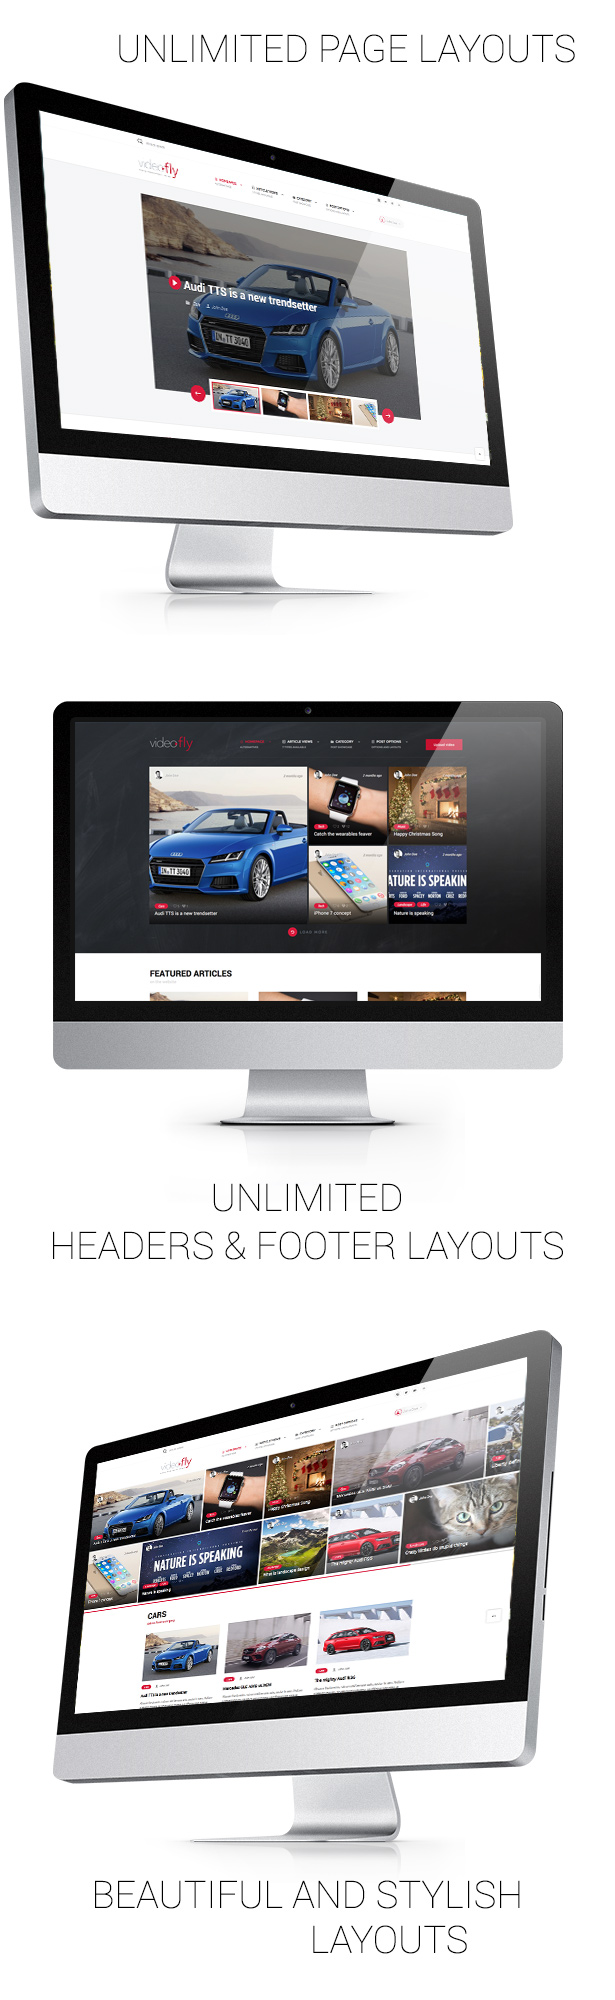 Multiple layouts and homepages